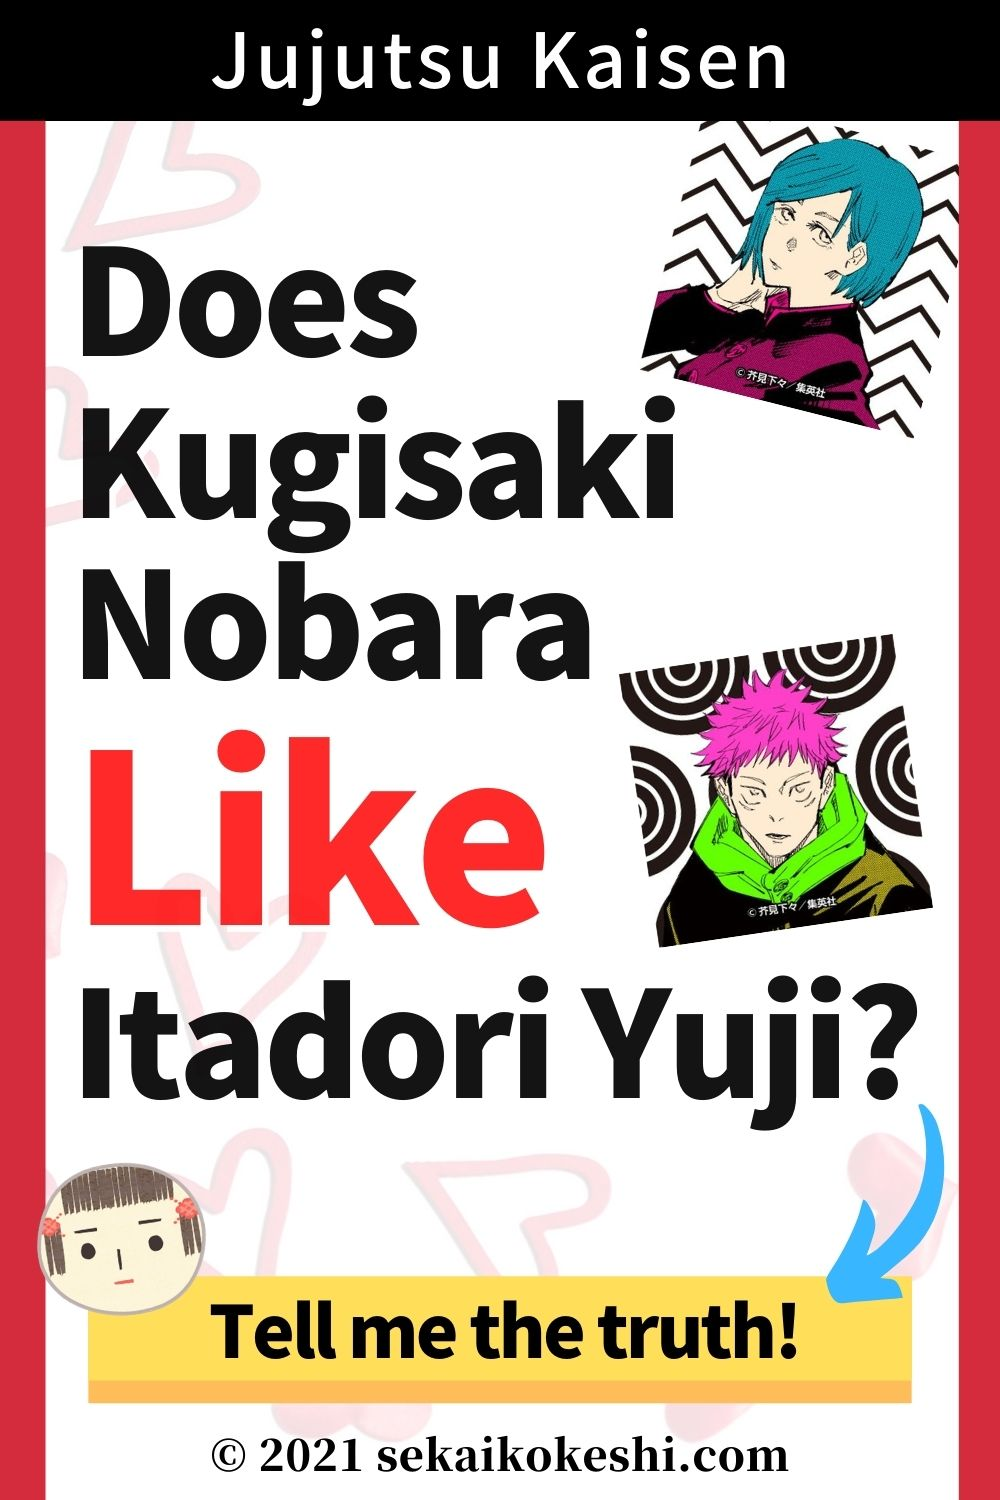 jujutsu kaisen, does kugisaki nobara like itadori yuji? tell me the truth!